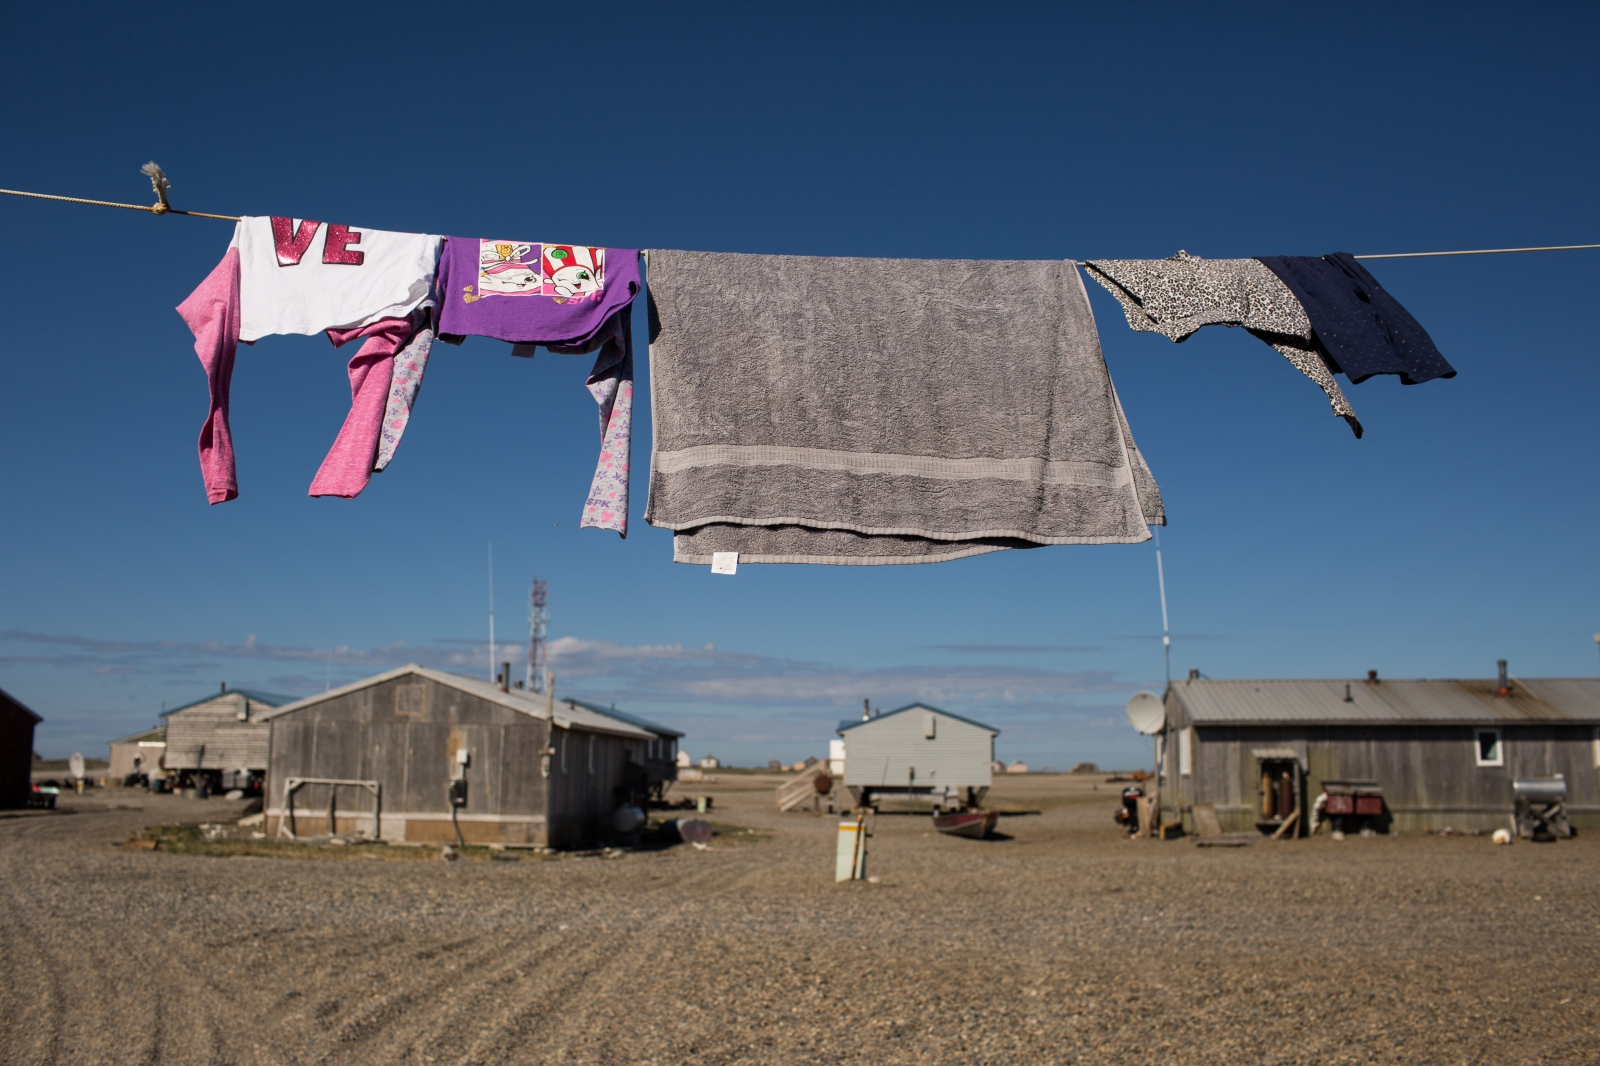 A clothesline hangs between homes in Gambell, Alaska.